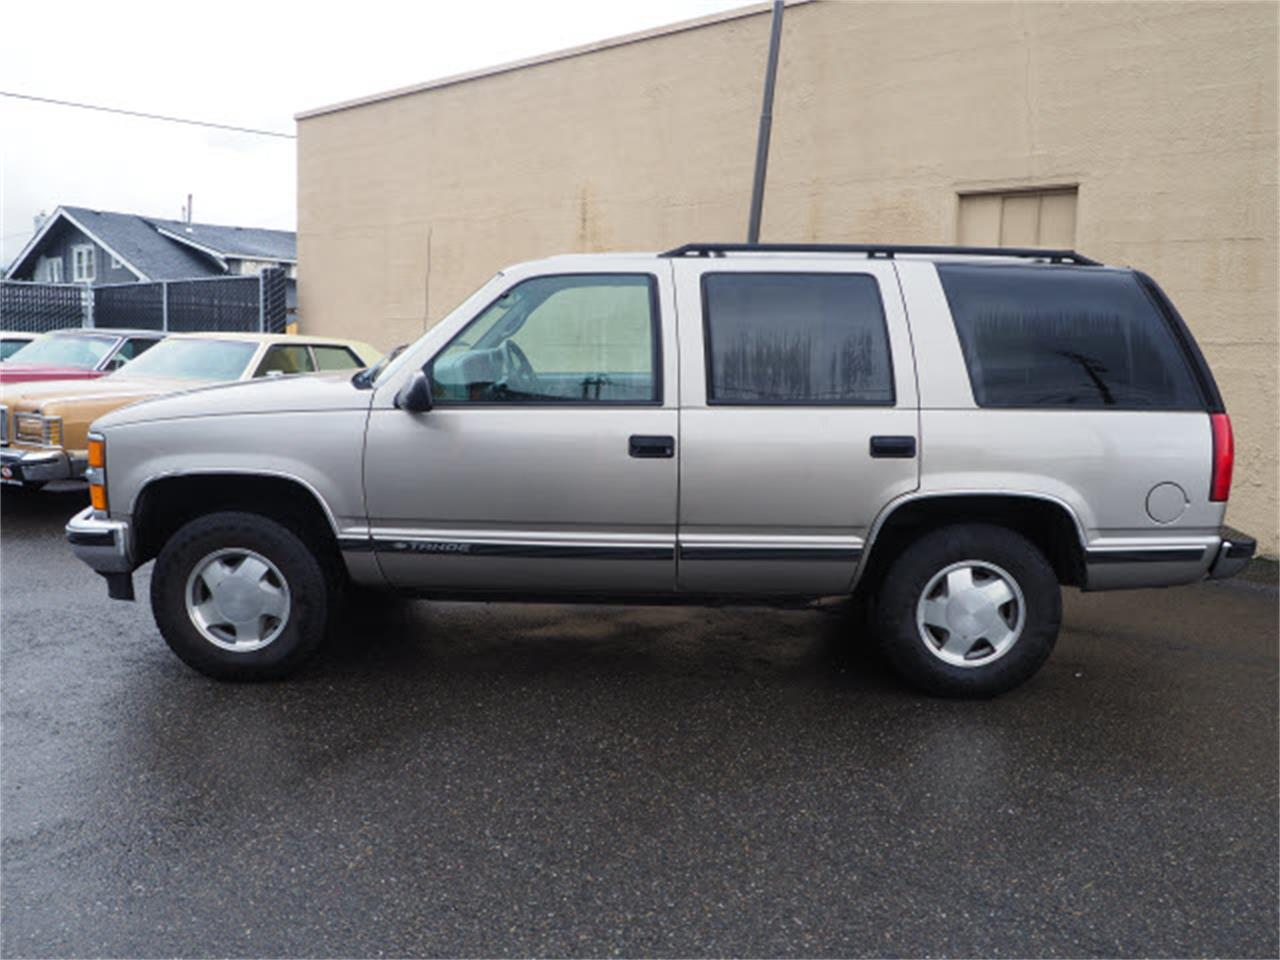 1999 Chevrolet Tahoe (CC-1274689) for sale in Tacoma, Washington